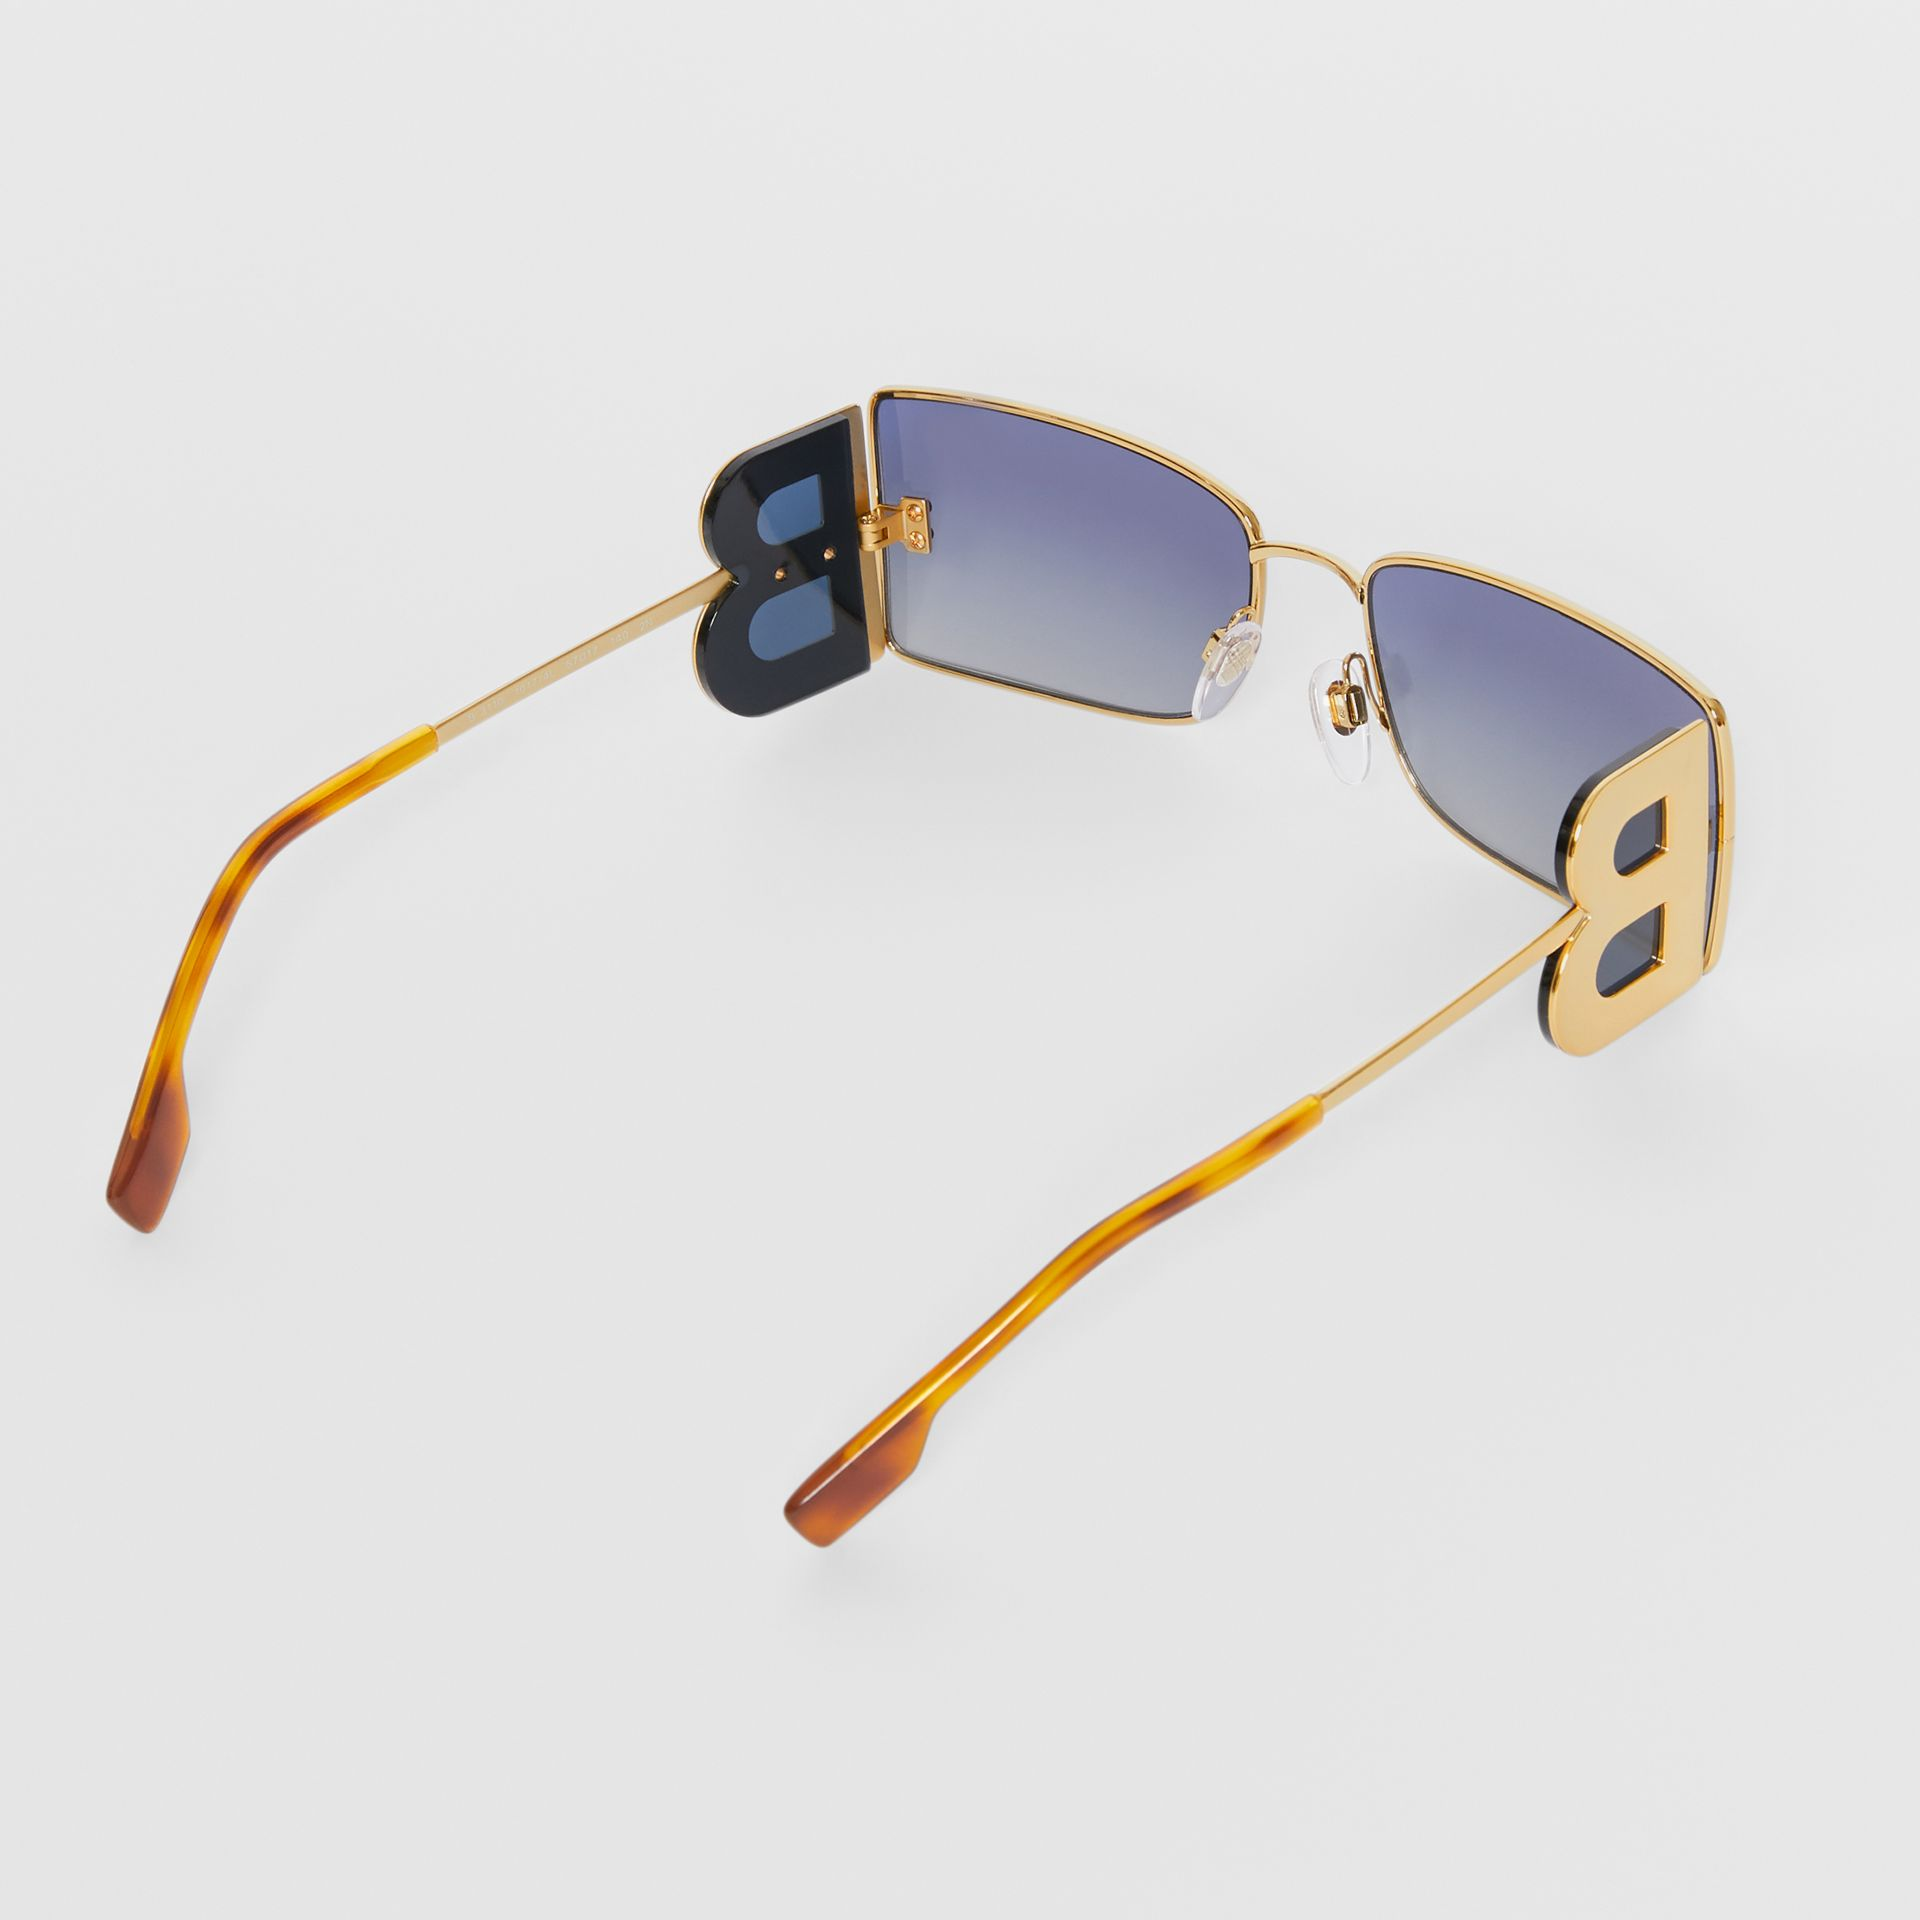 'B' Lens Detail Rectangular Frame Sunglasses in Amber Tortoiseshell - Women | Burberry - gallery image 5